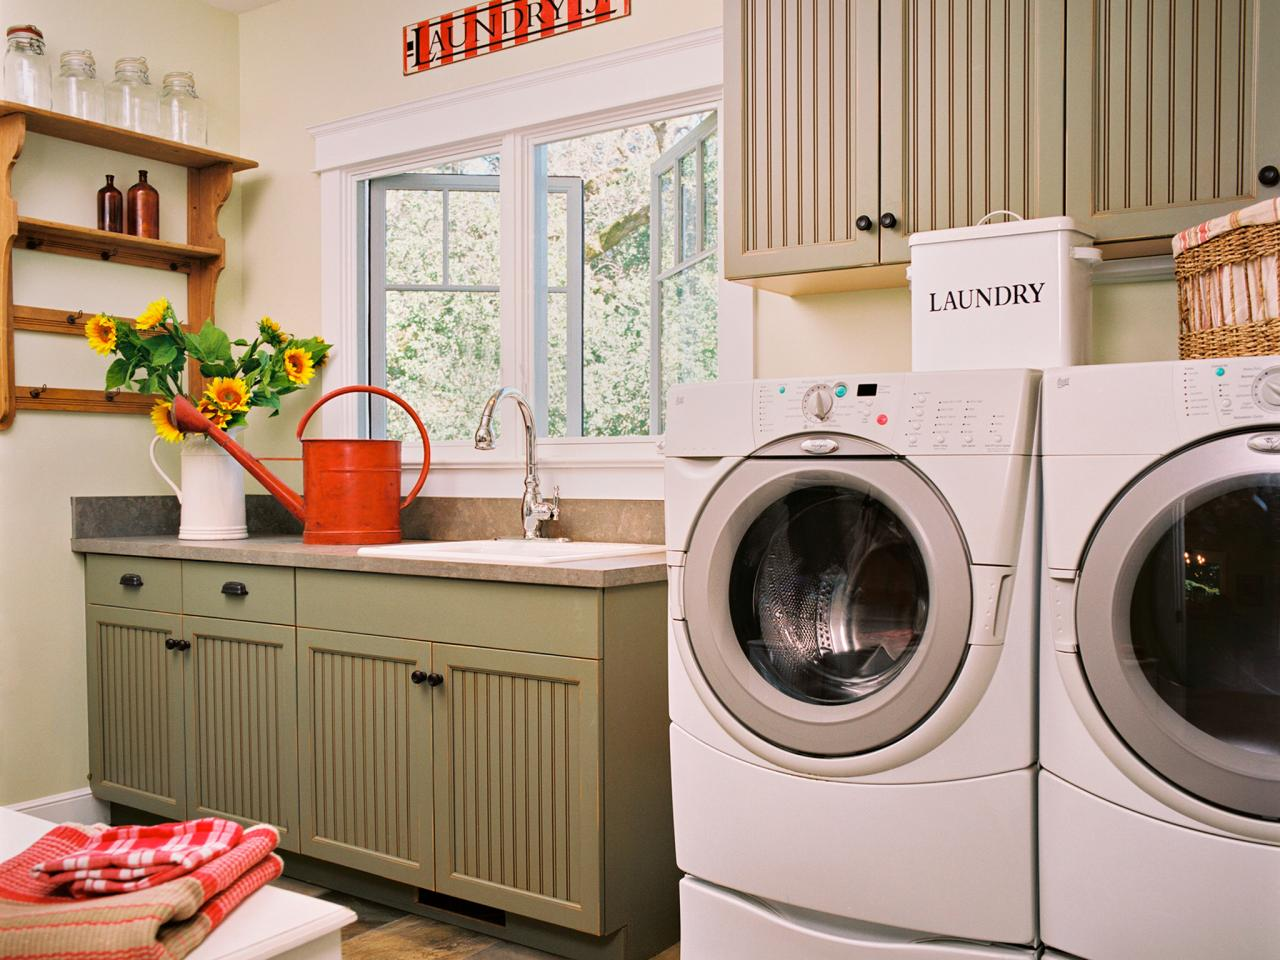 Home Makeover Ideas laundry room makeover ideas: pictures, options, tips & advice | hgtv